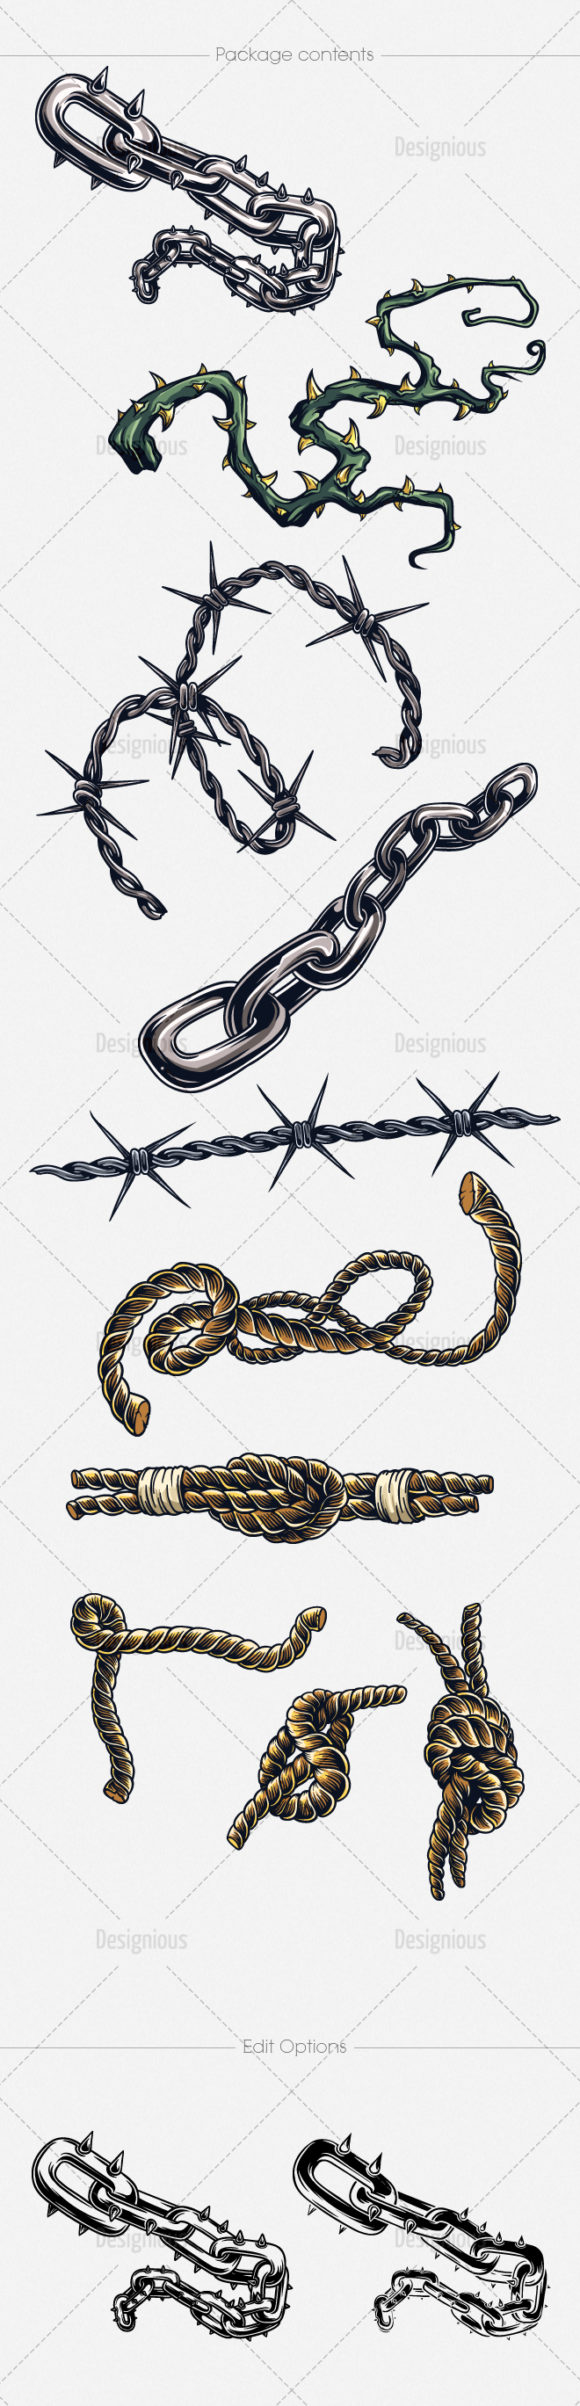 Shackled Vector Pack 1 6